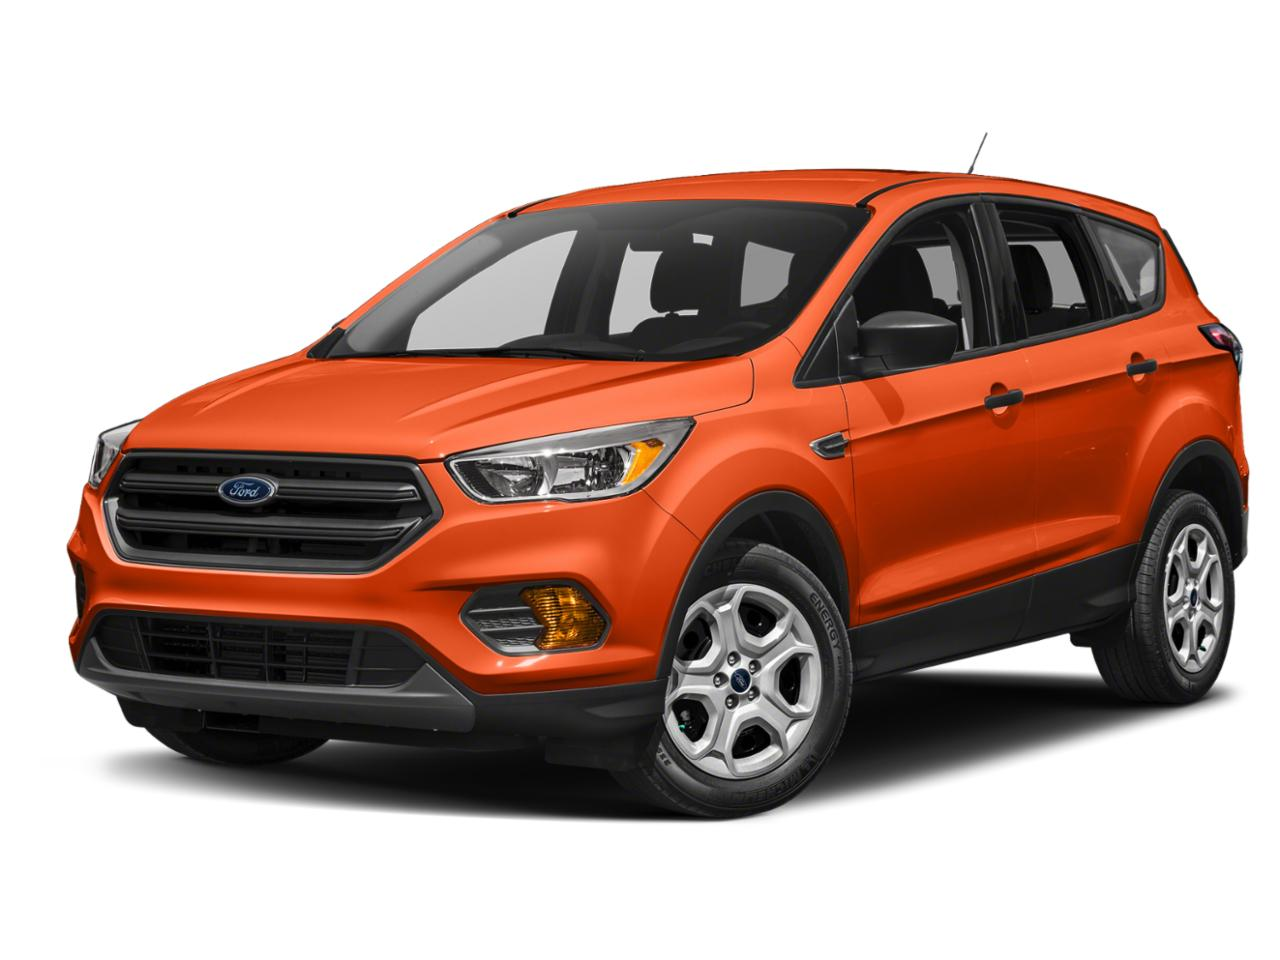 2019 Ford Escape Vehicle Photo in Neenah, WI 54956